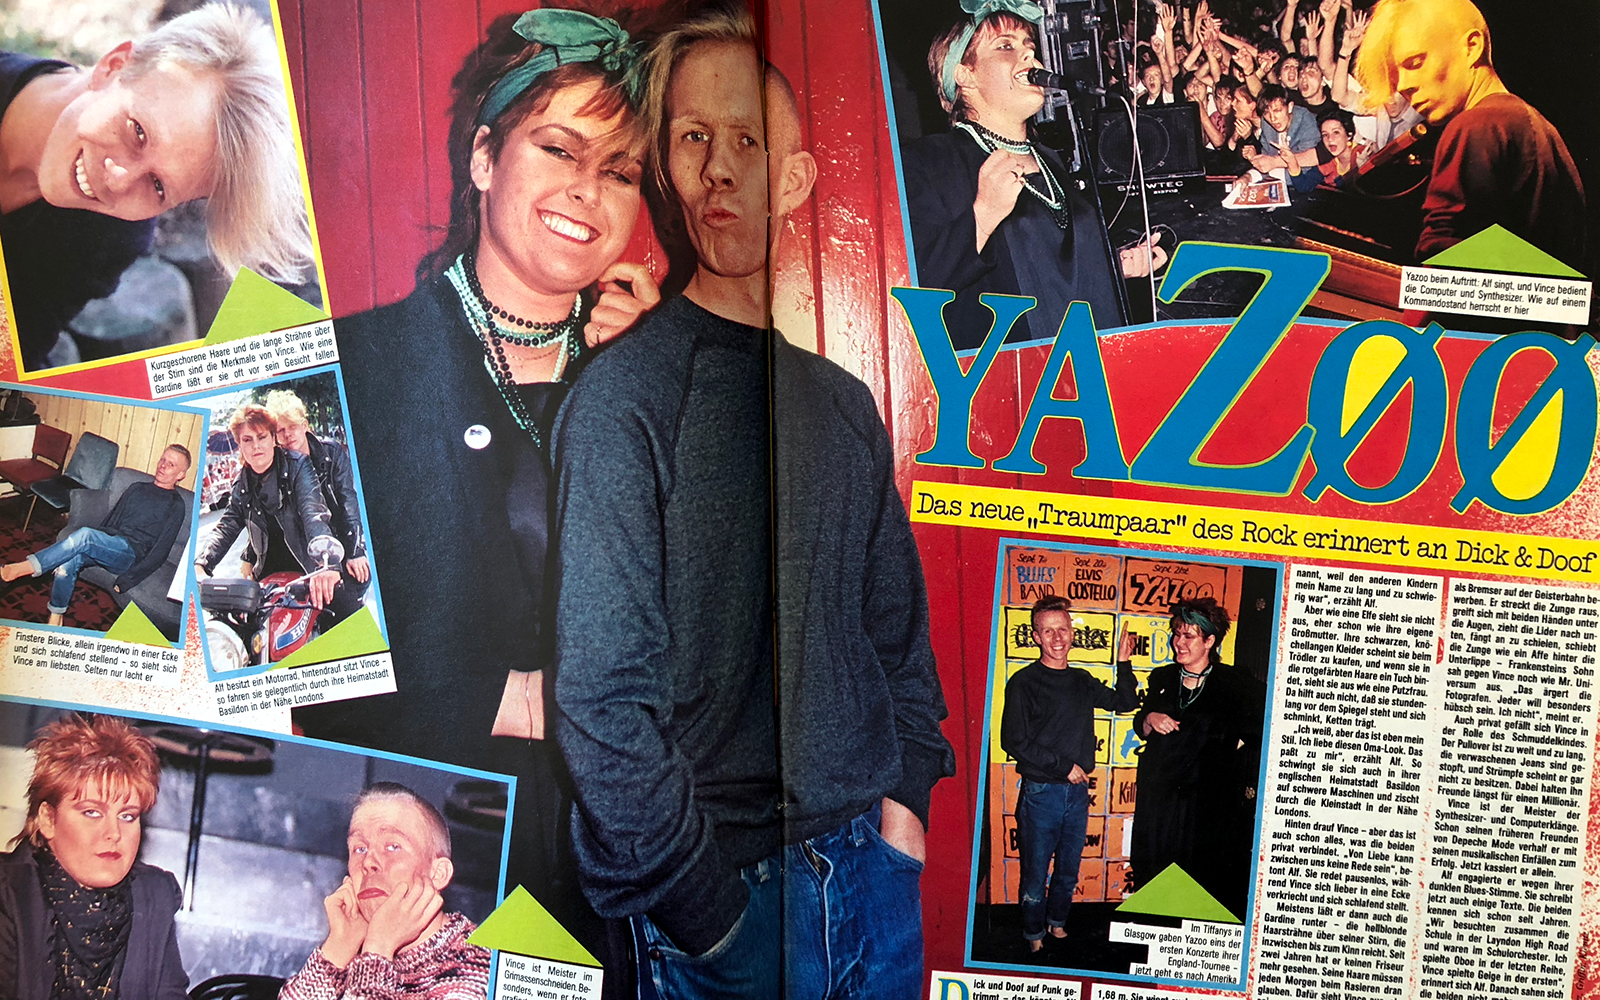 Yazoo - The Synth Clowns